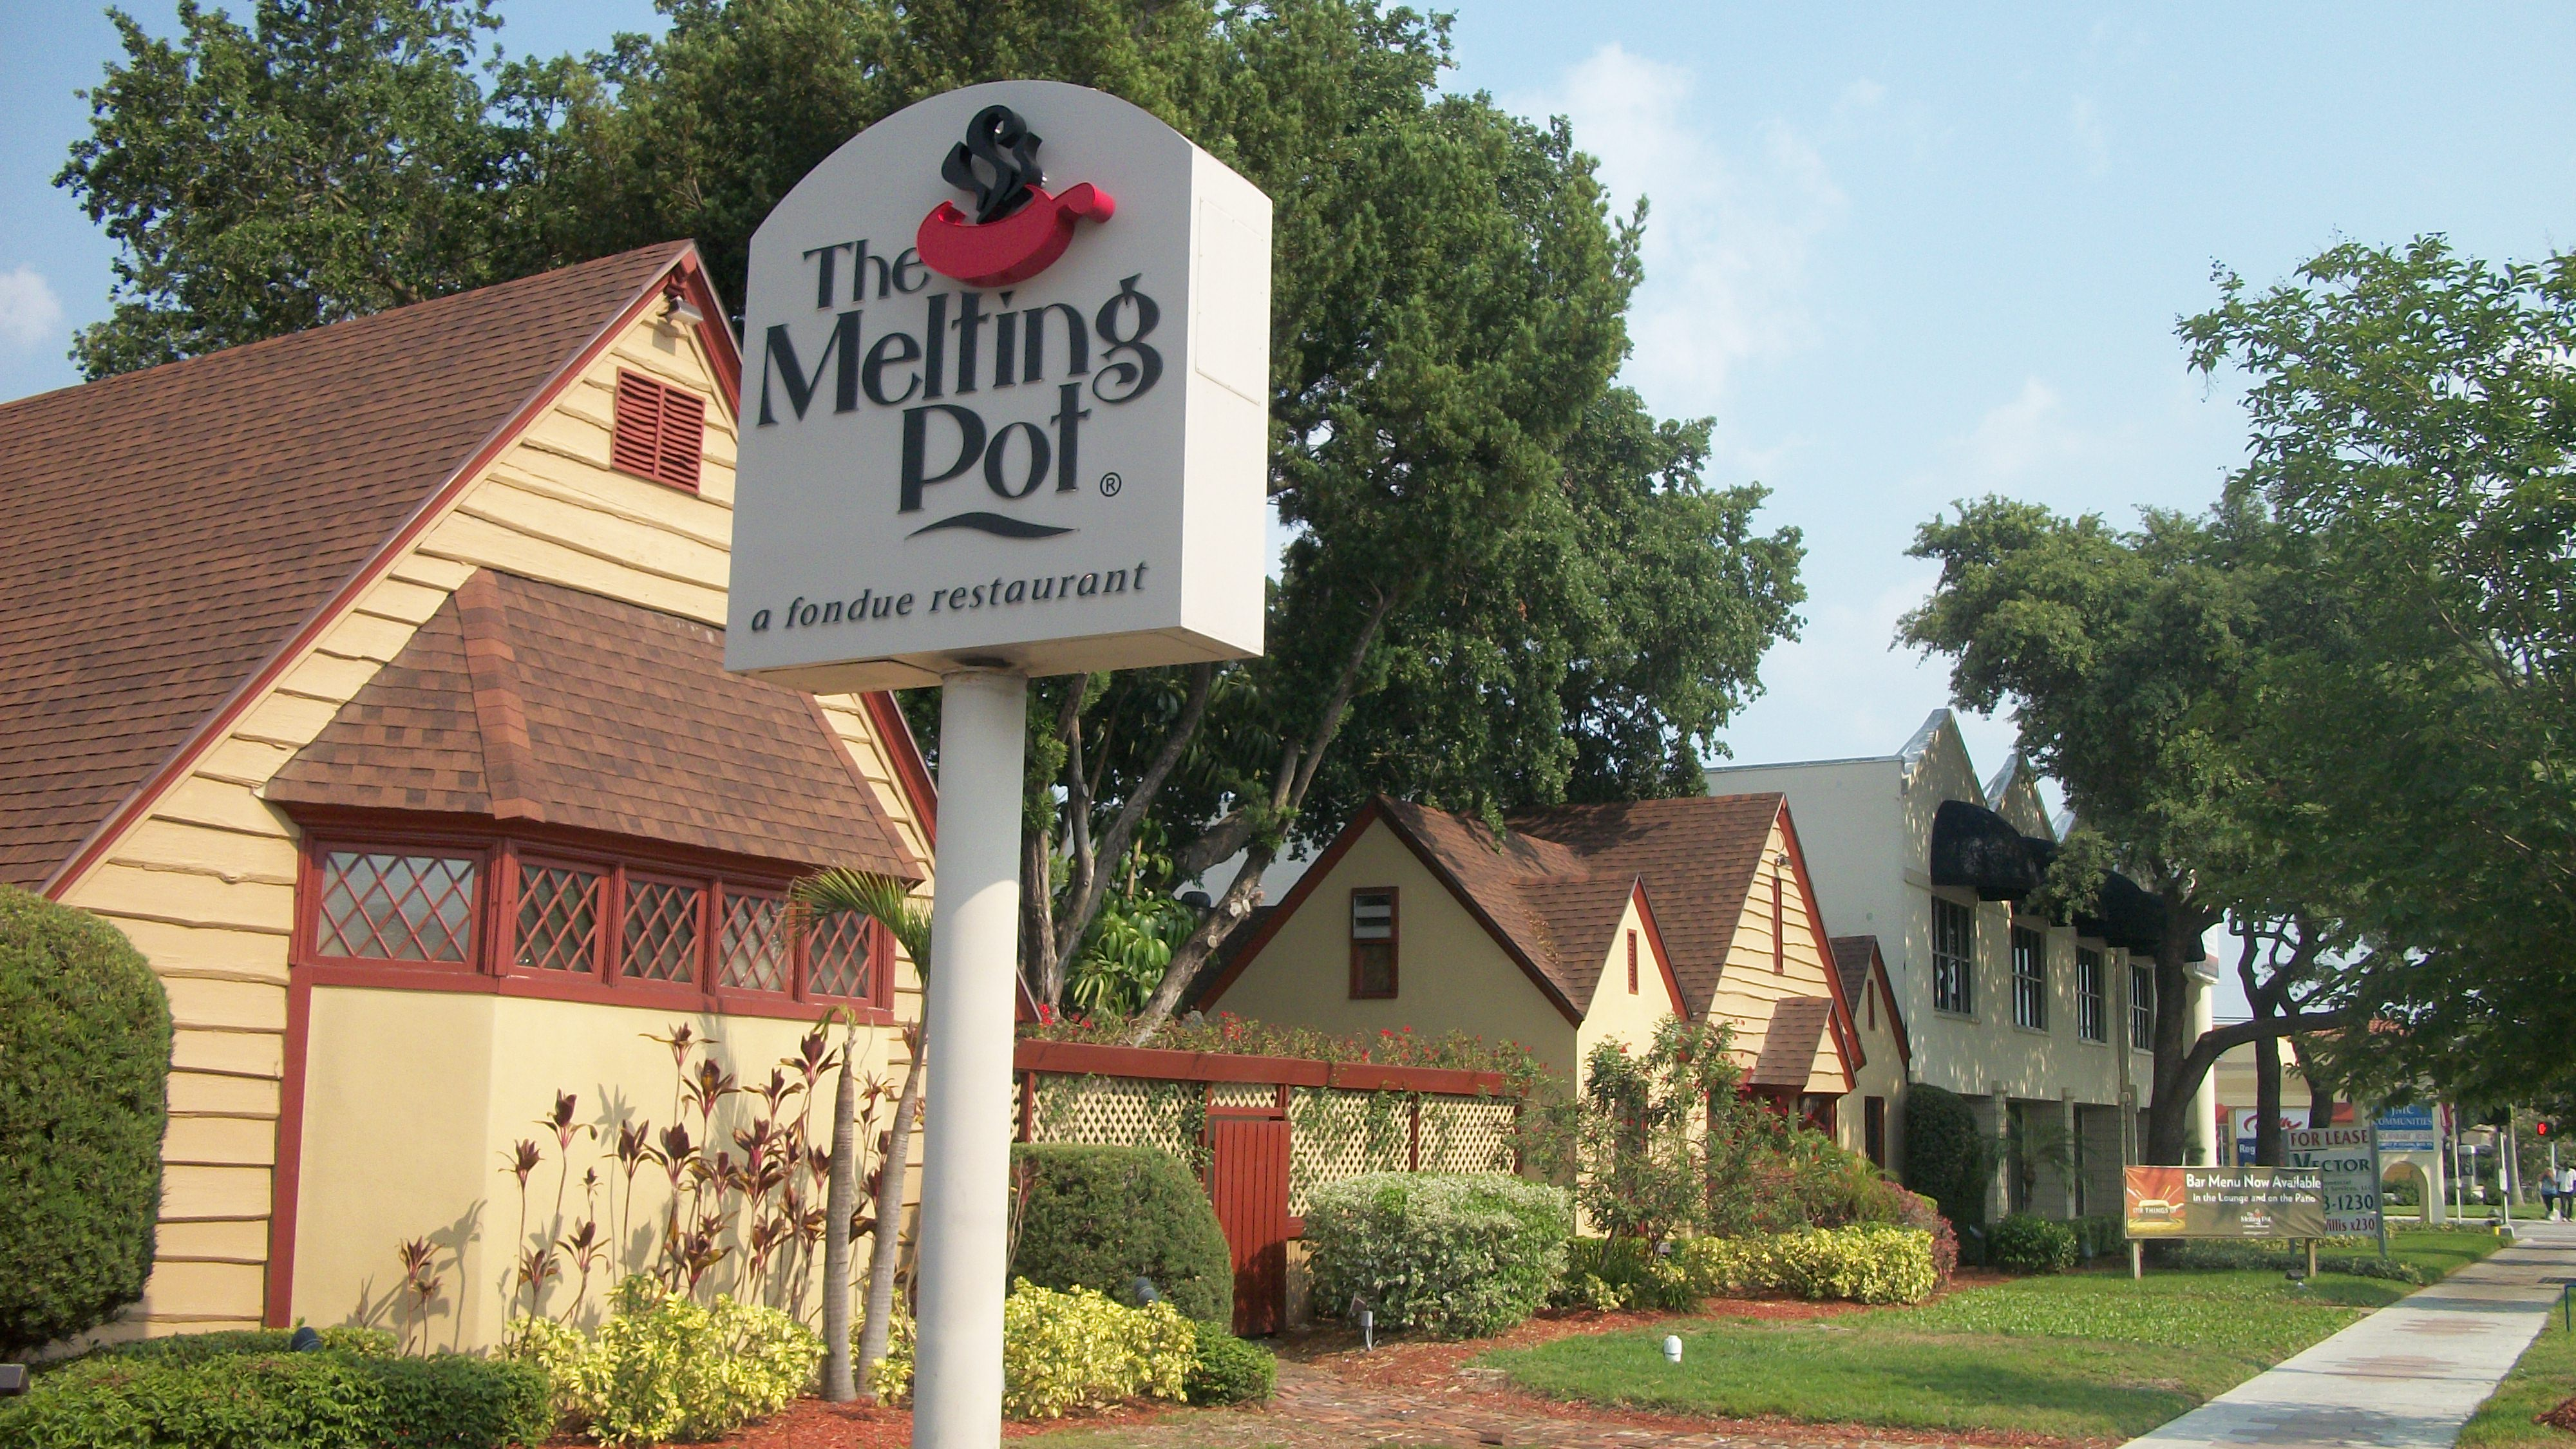 What is ,,melting pot,,?